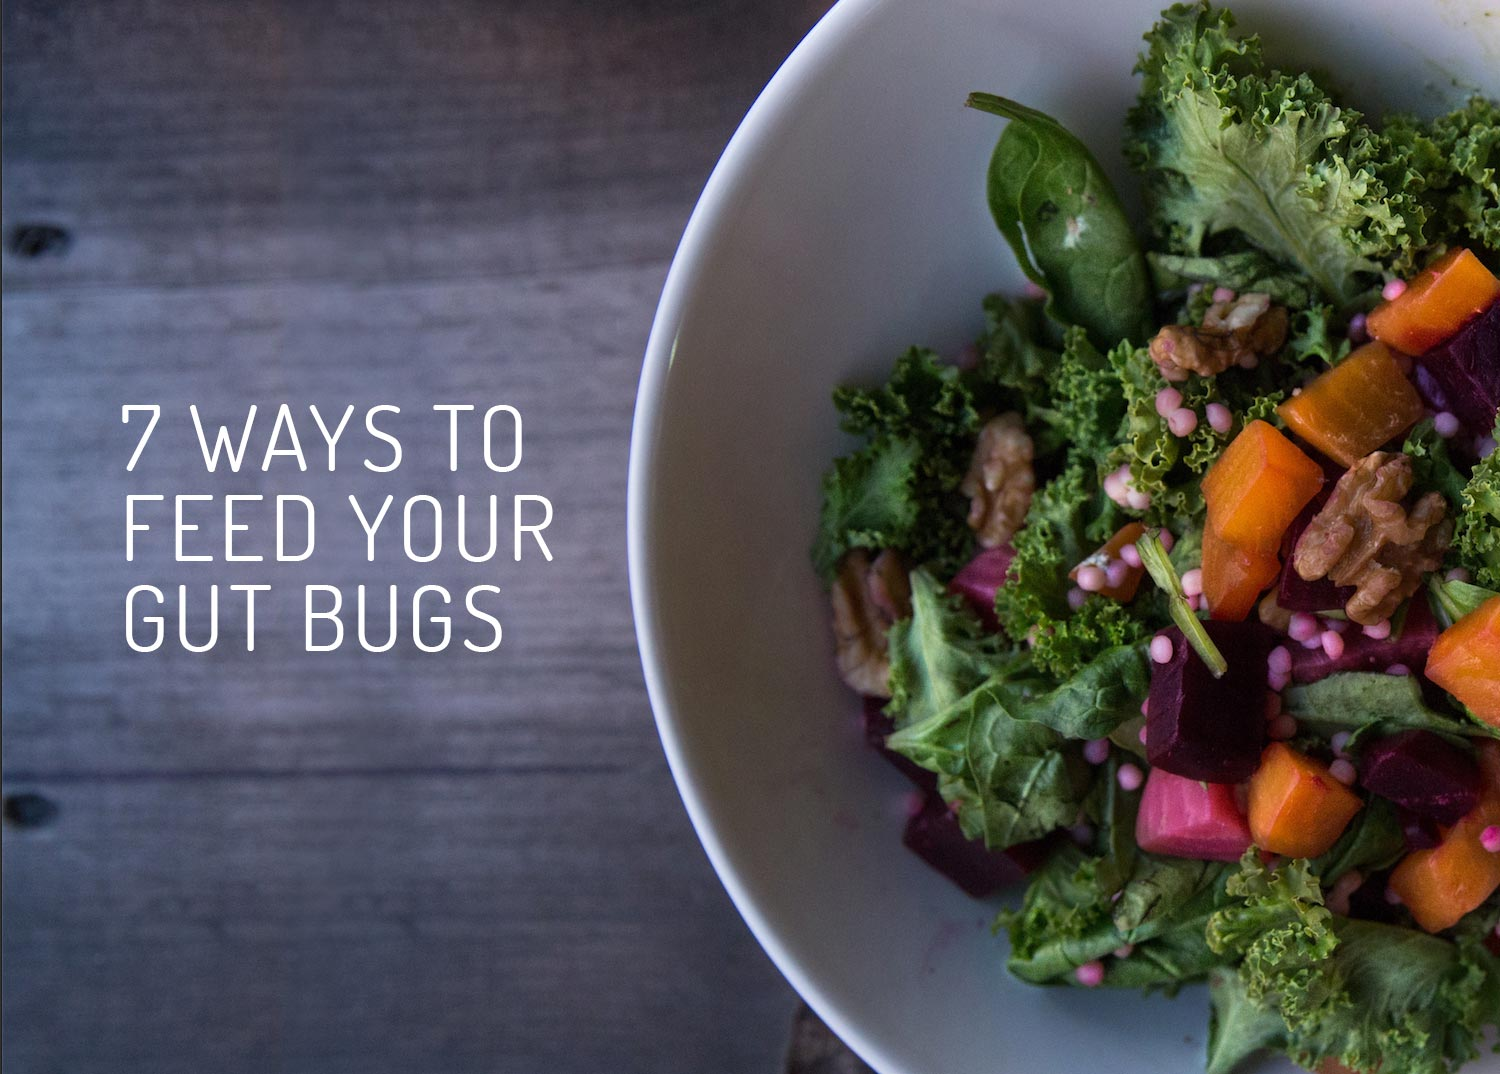 7 Ways to Feed Your Gut Bugs